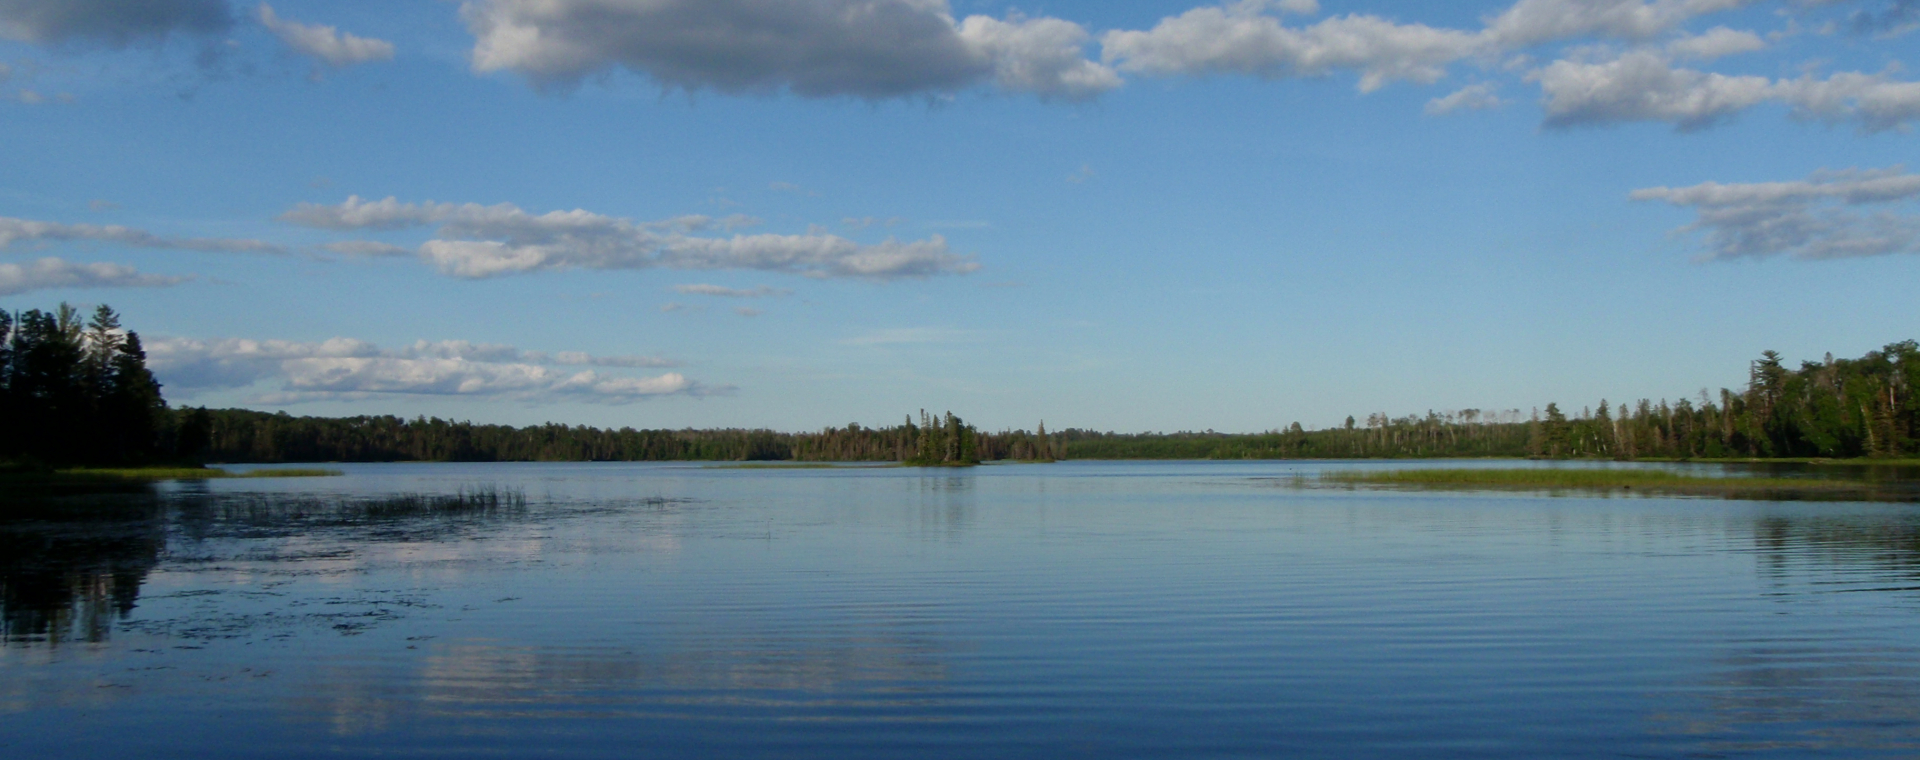 Pike River Flowage